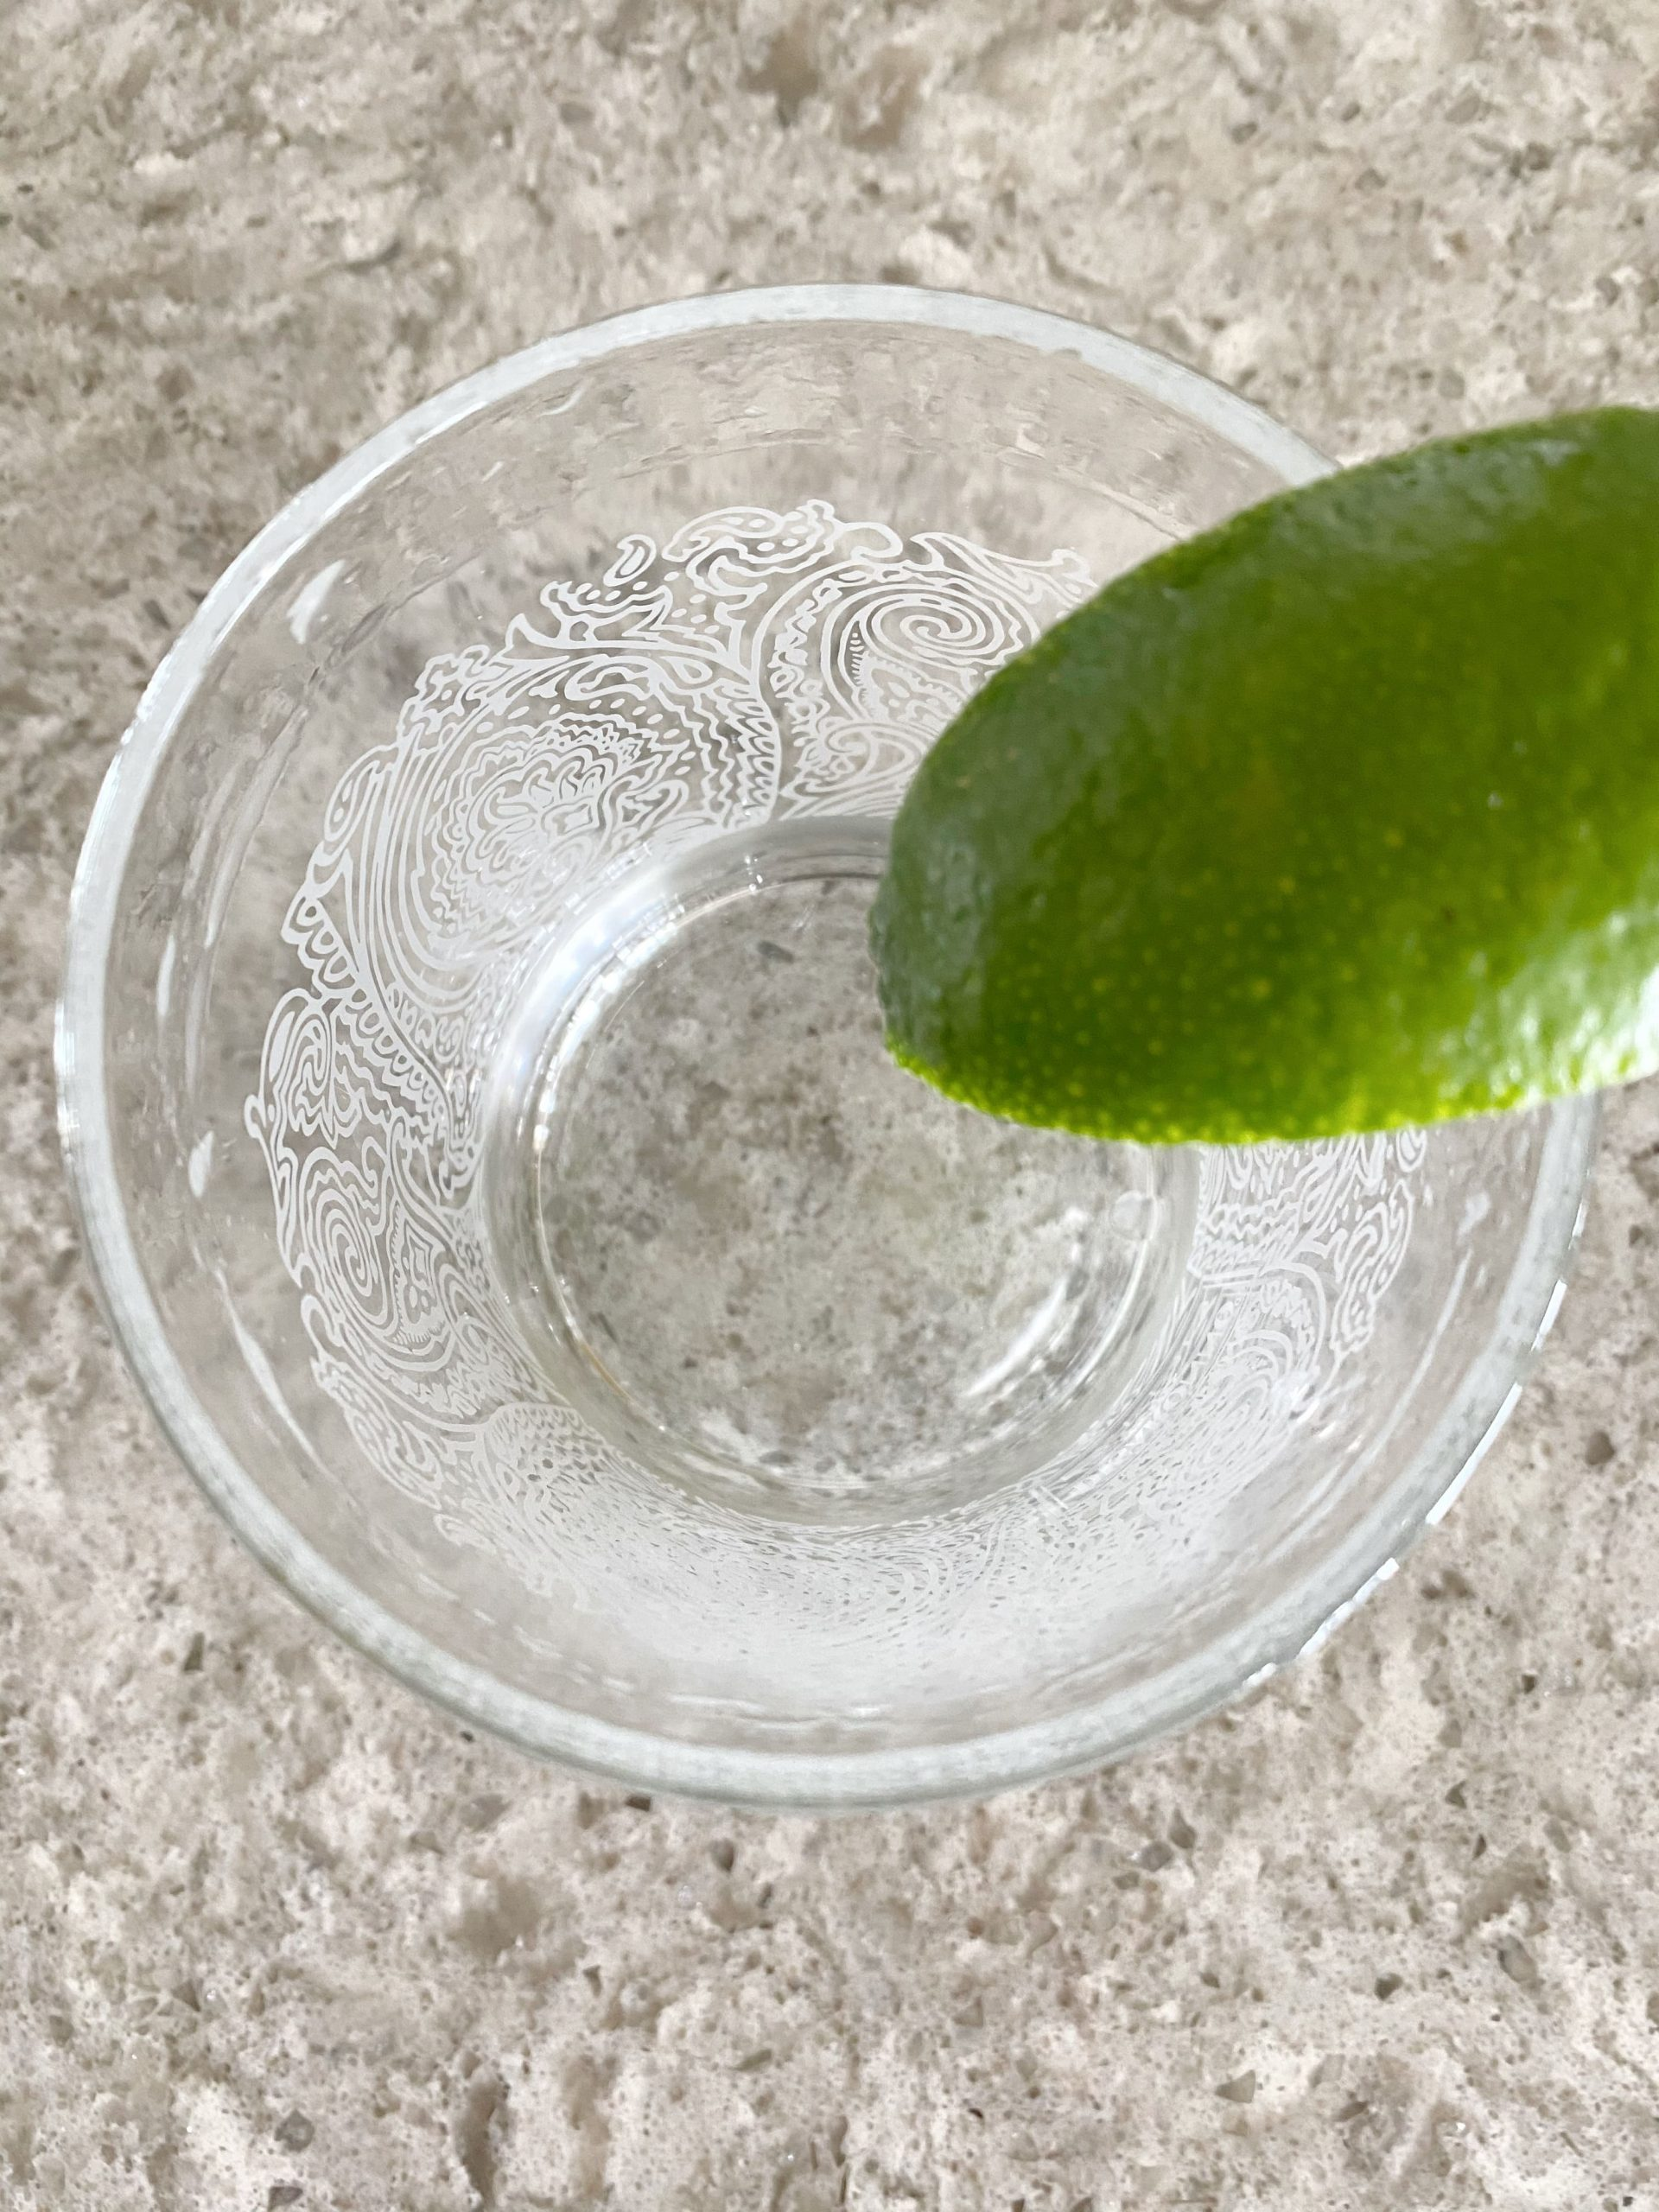 lime on cocktail glass